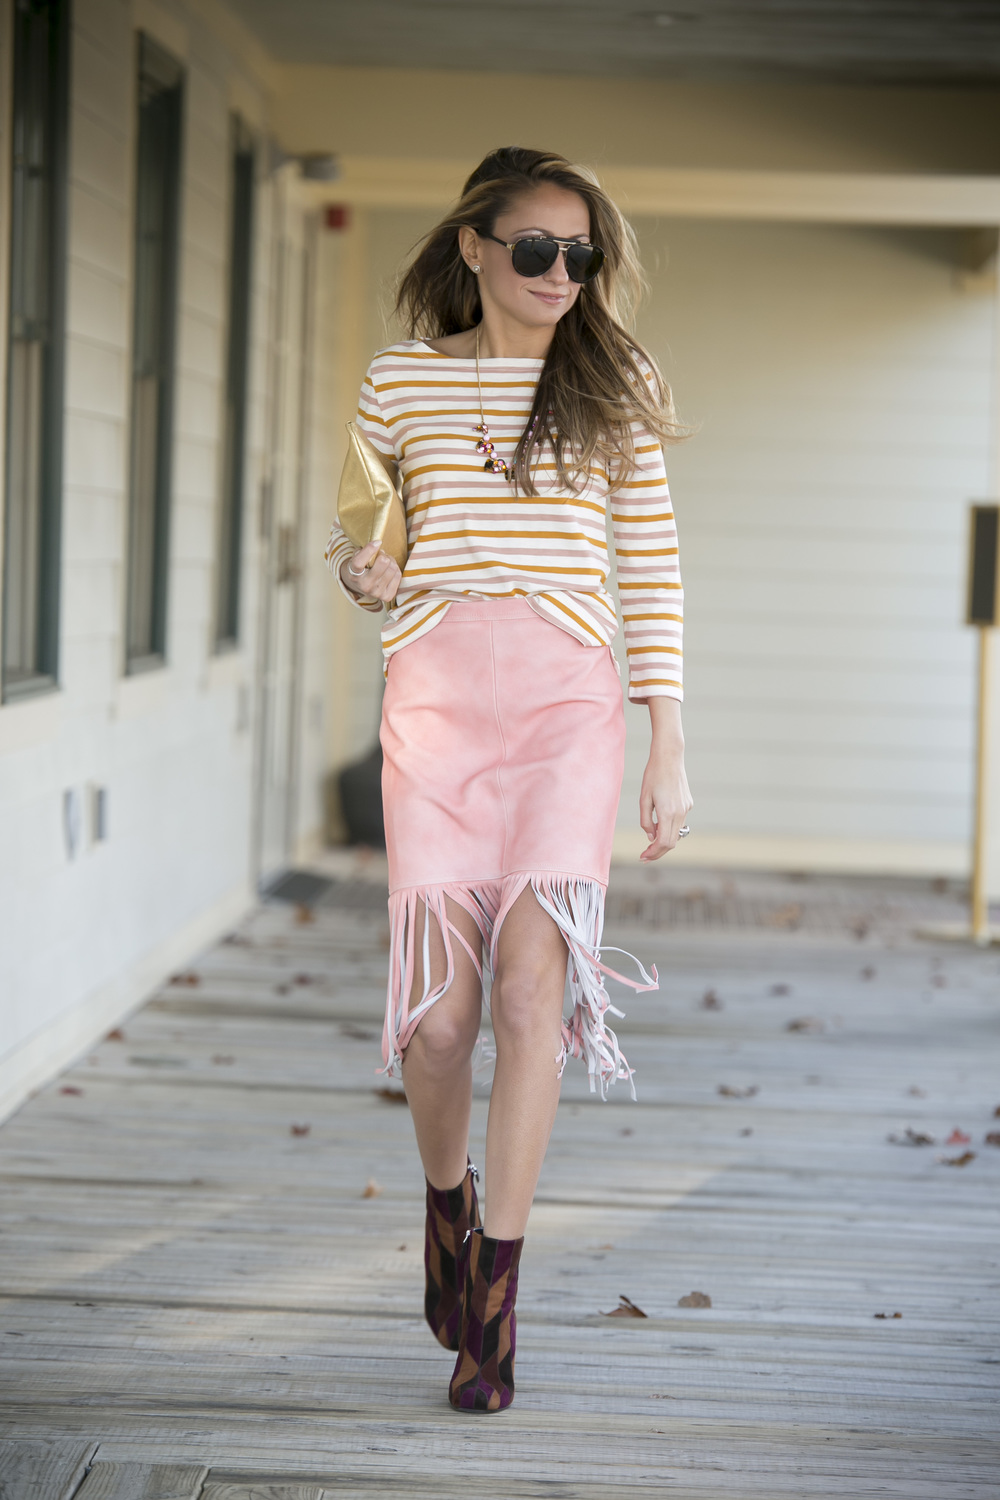 Top:J.Crew|Skirt:J.Crew|Booties:Prada|Necklace:J.Crew Dino Petrocelli Photography